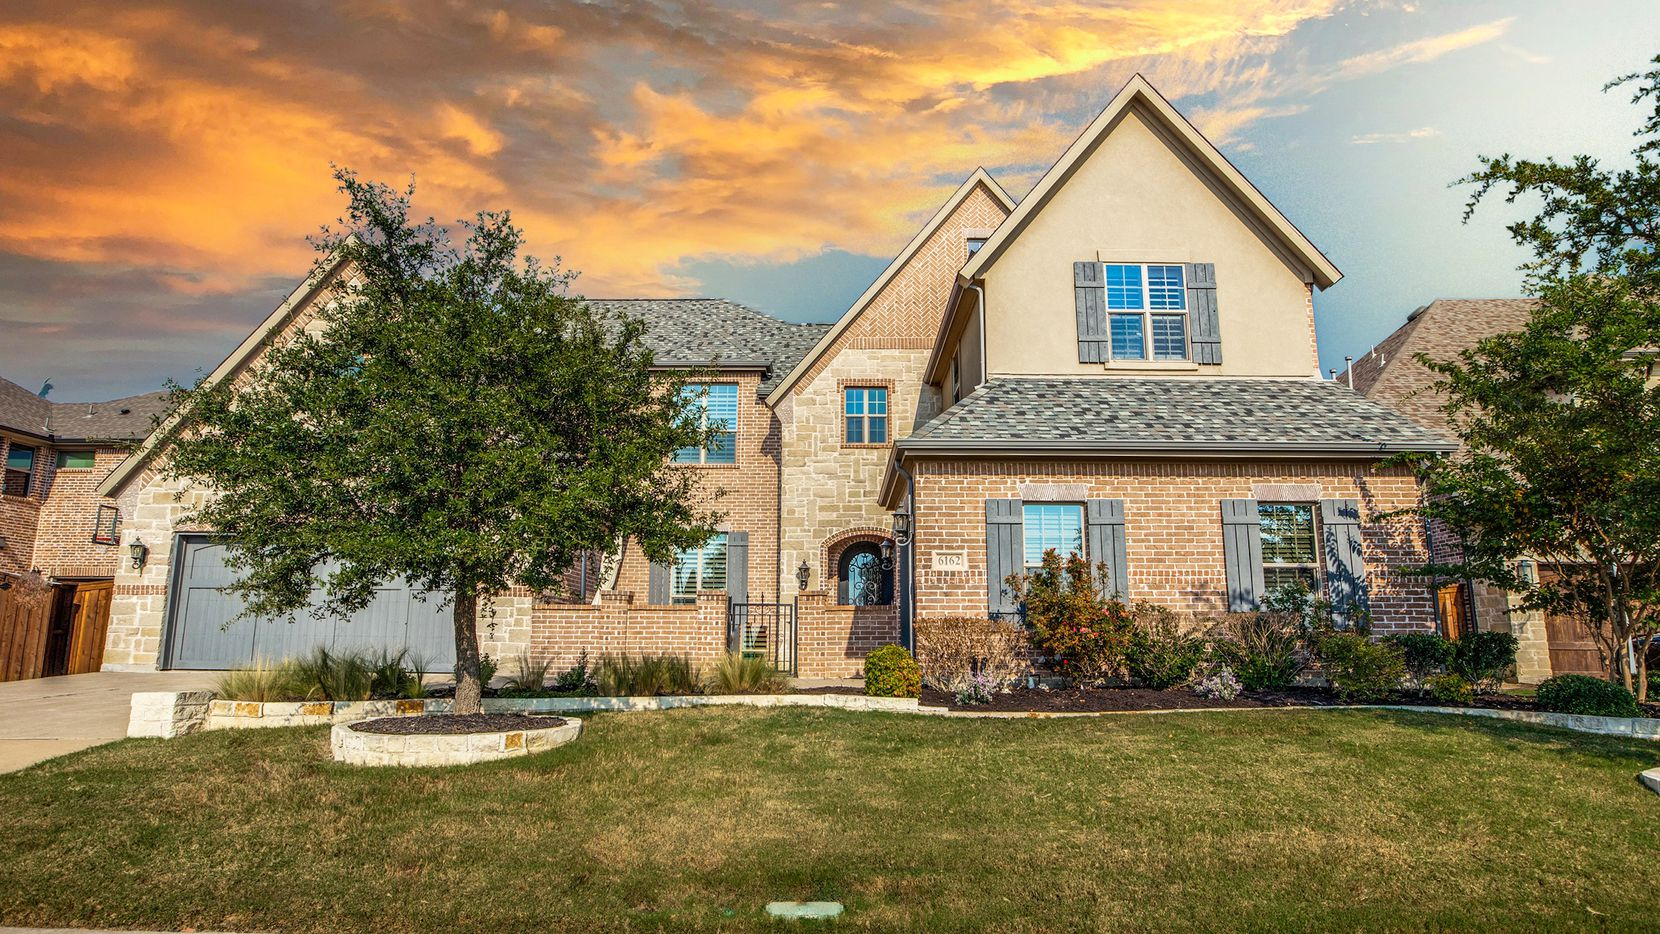 The five-bedroom home at 6162 Pitchfork Ranch Drive in Frisco's Phillips Creek Ranch is priced at $995,000. It will be held open from 1 to 3 p.m. on Sept. 12.